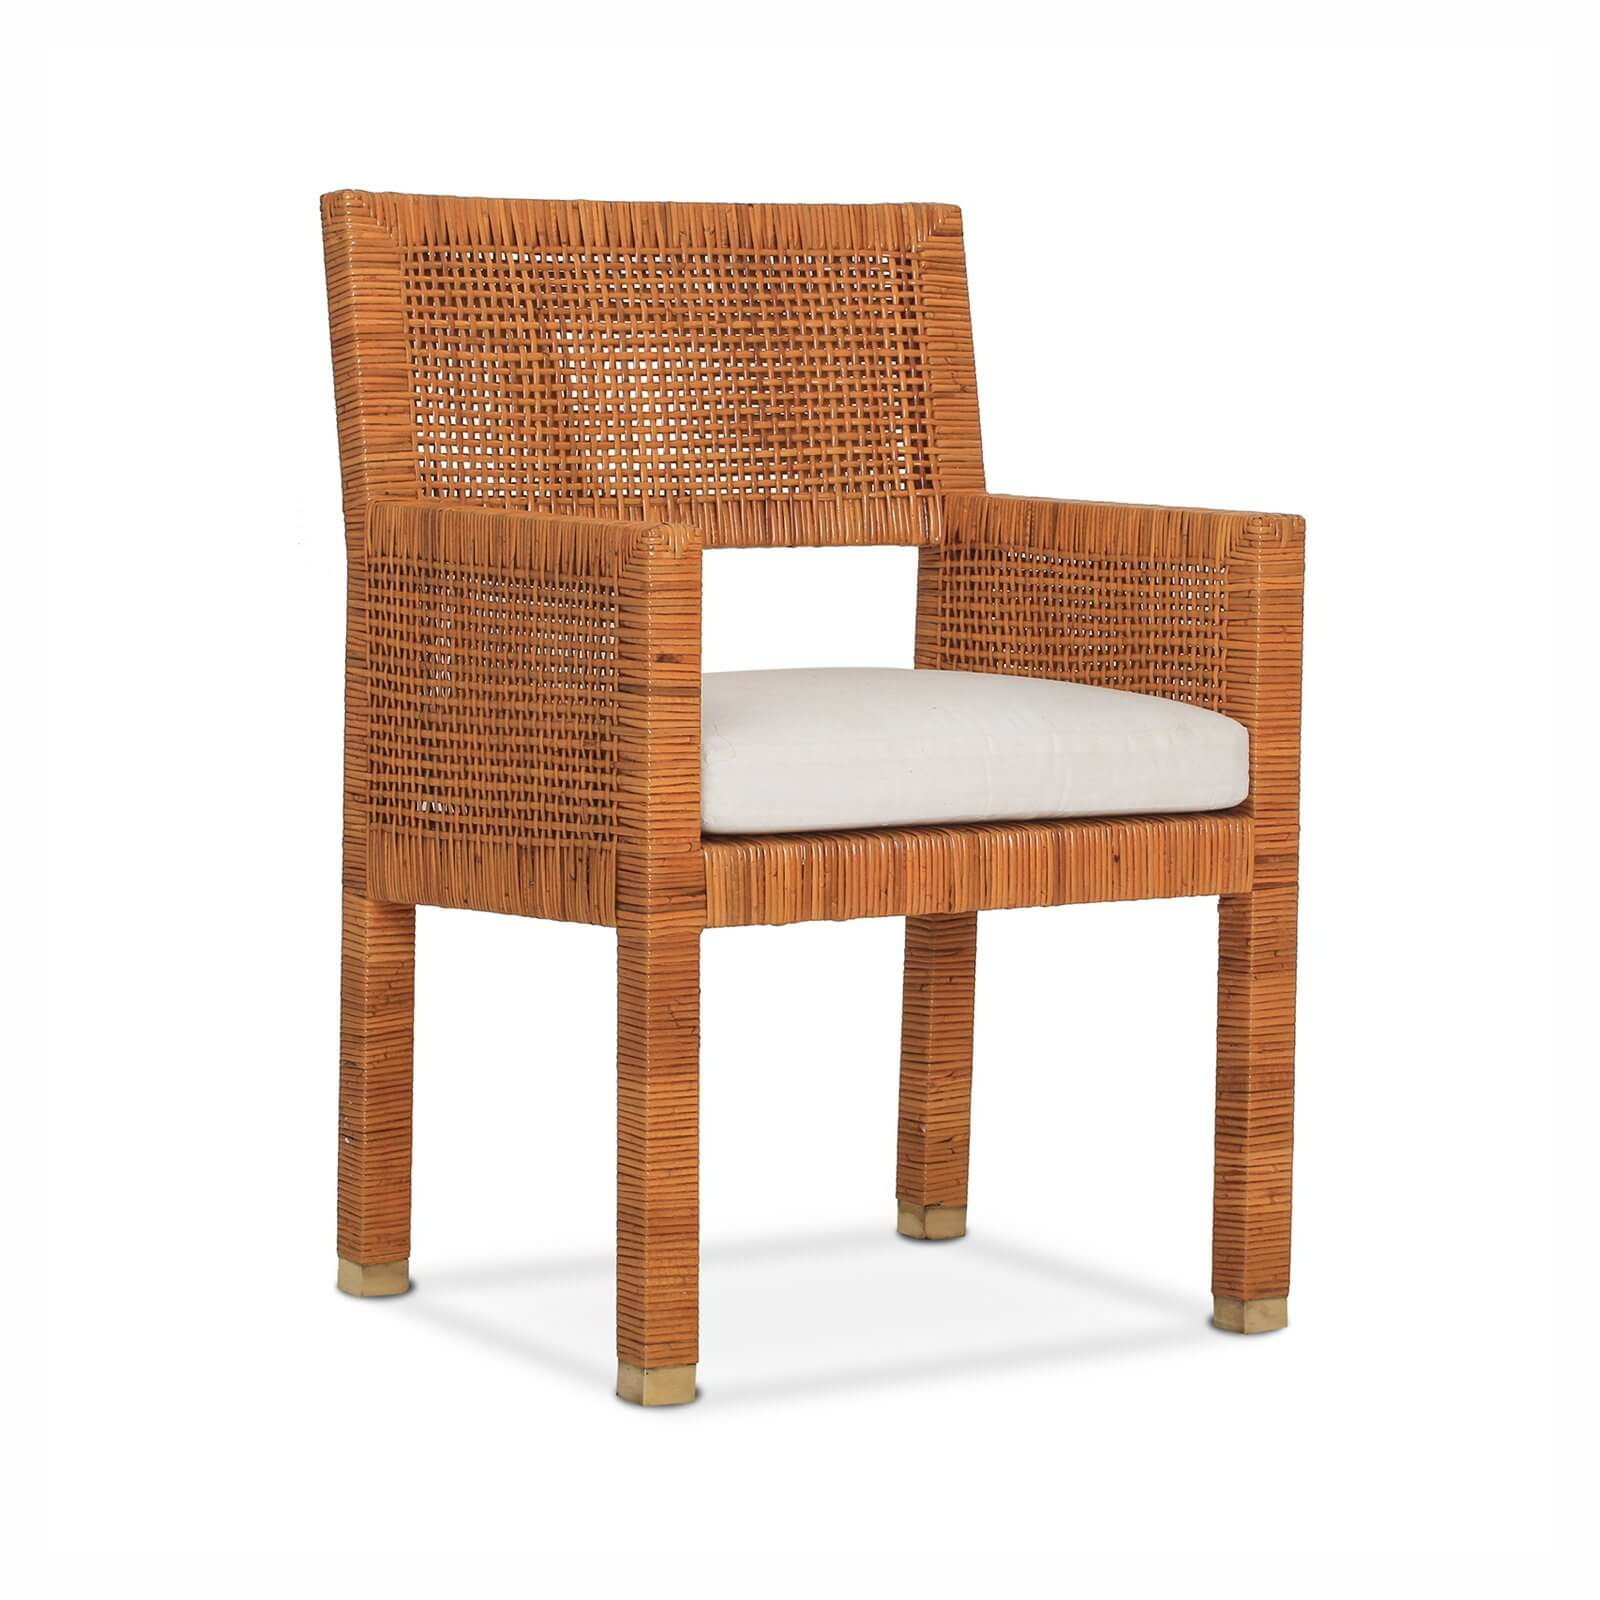 INDIGO COAST ARM CHAIR - STUART MEMBERY HOME COLLECTION